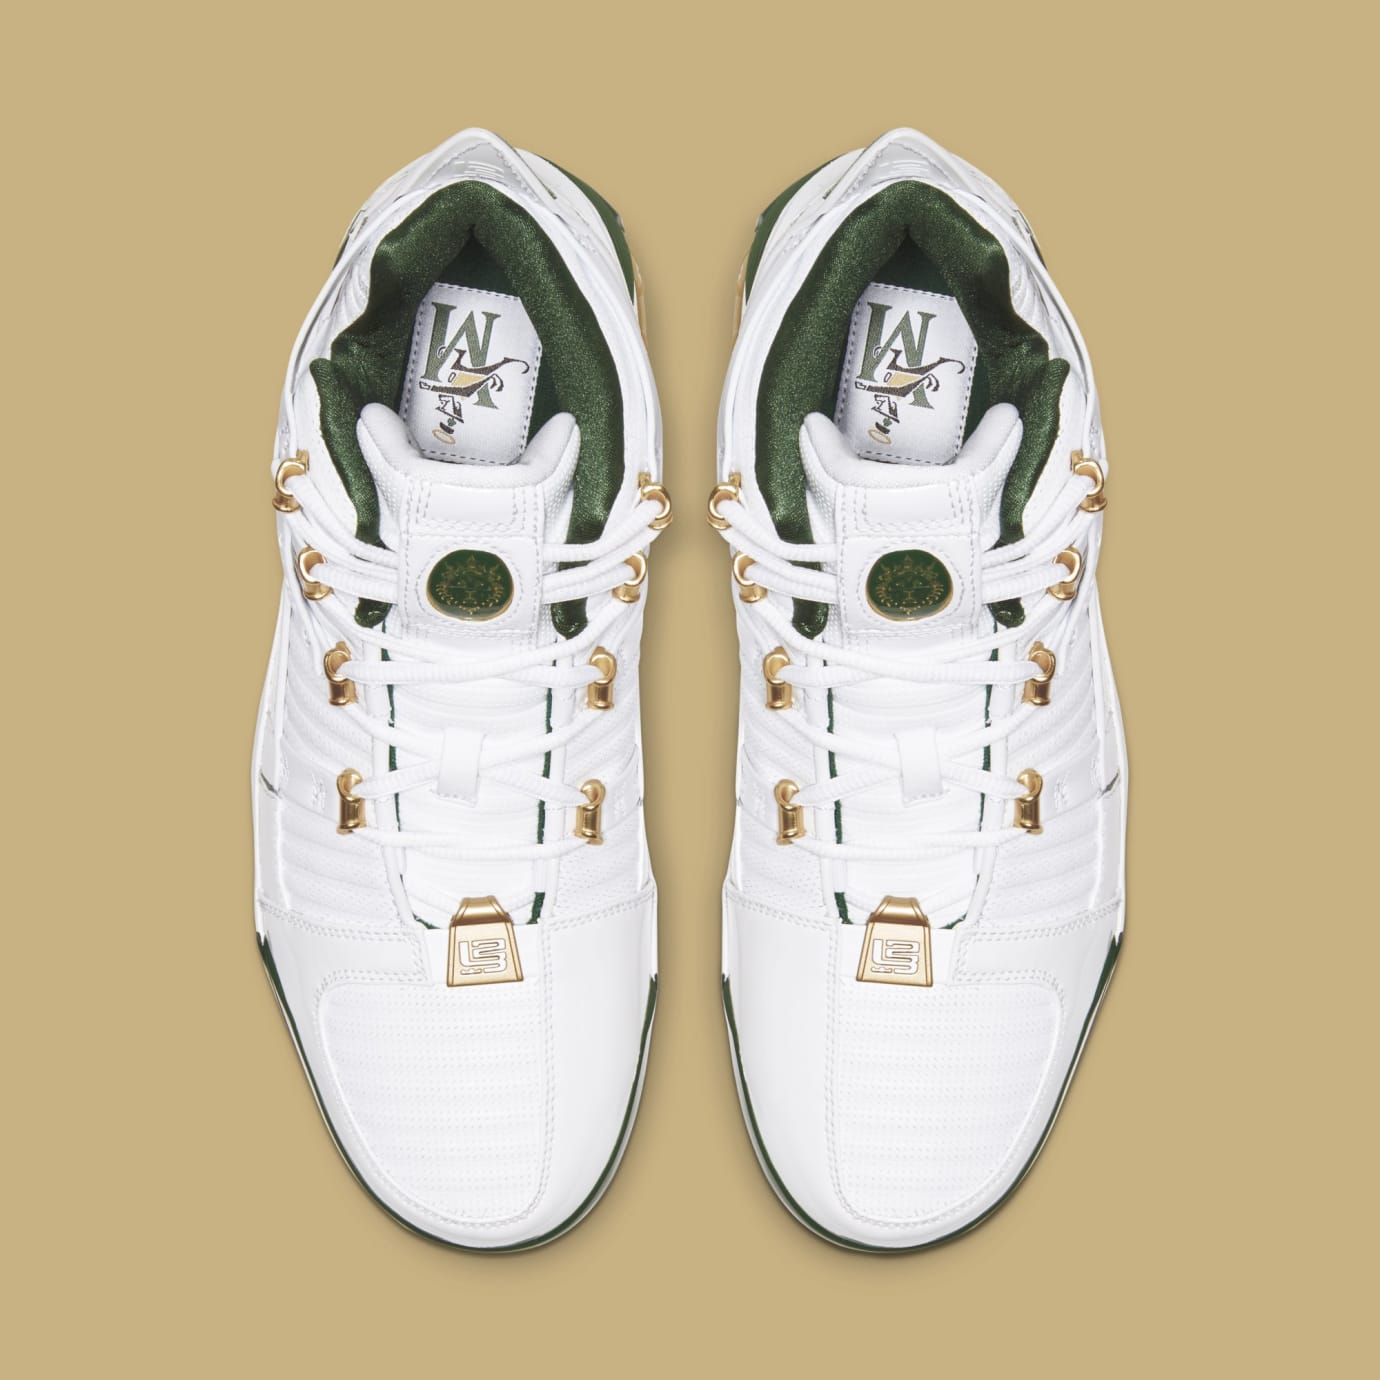 3fc54d341ebbaa Nike Zoom LeBron 3 Retro  SVSM Home  White Deep Forest-Gold Dust ...